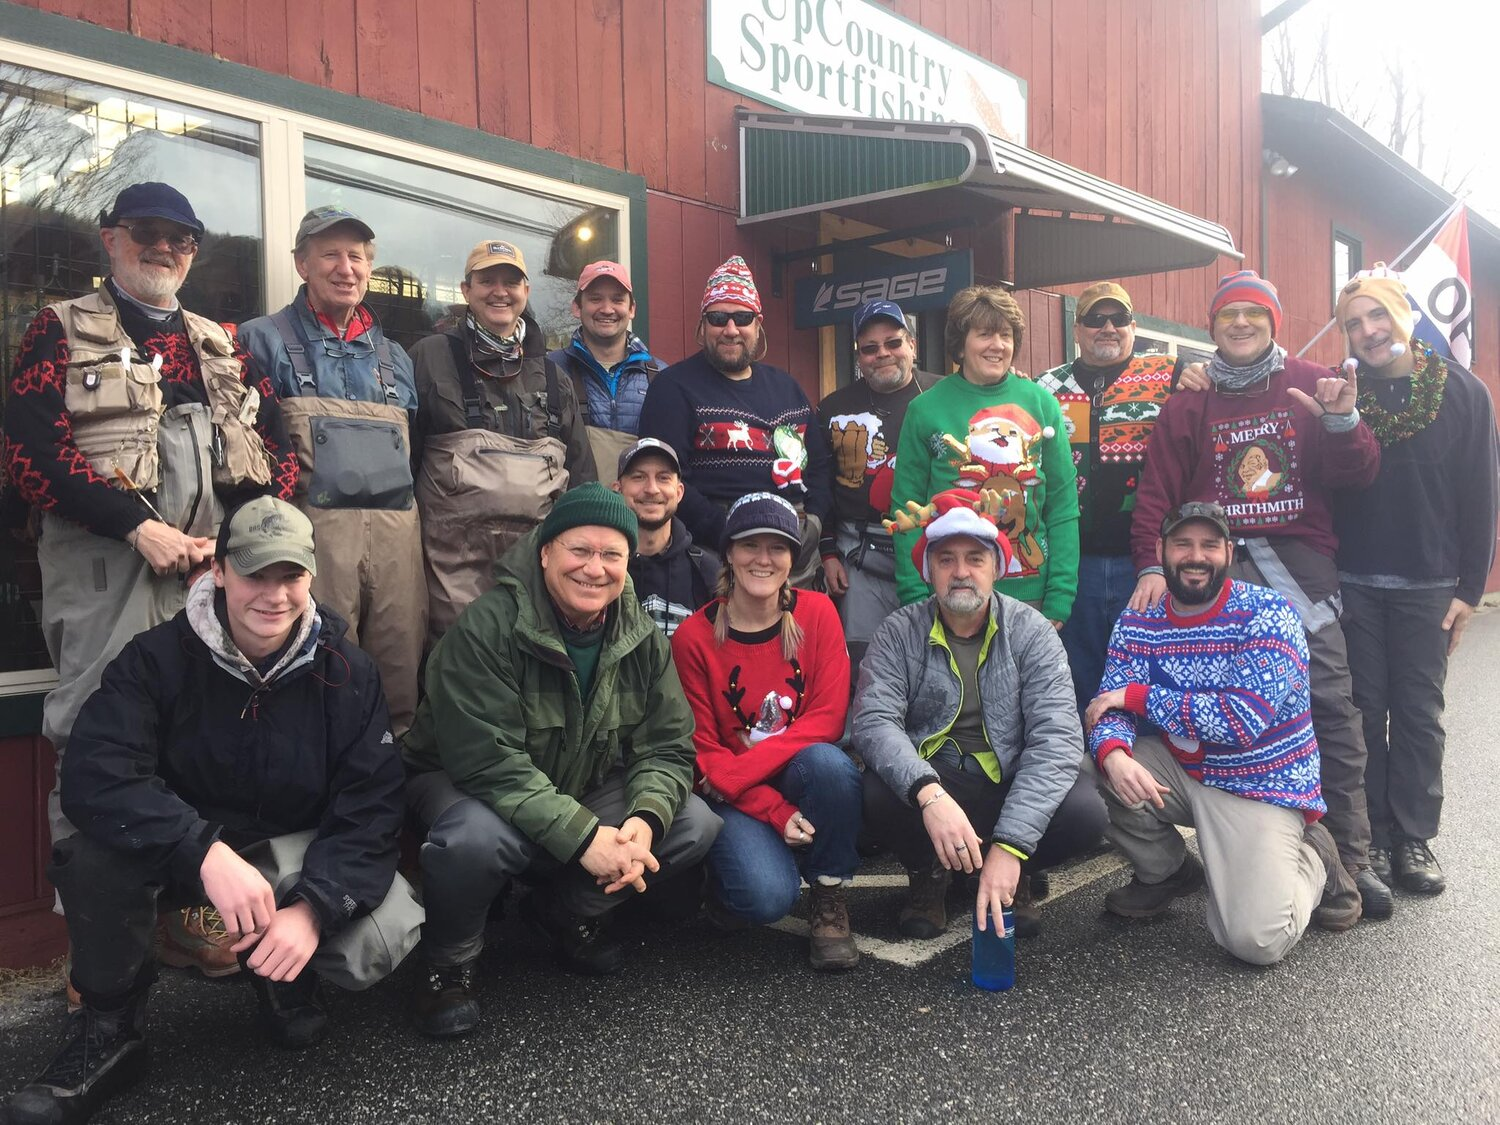 2018 Ugly Sweater fishing event on the Farmington